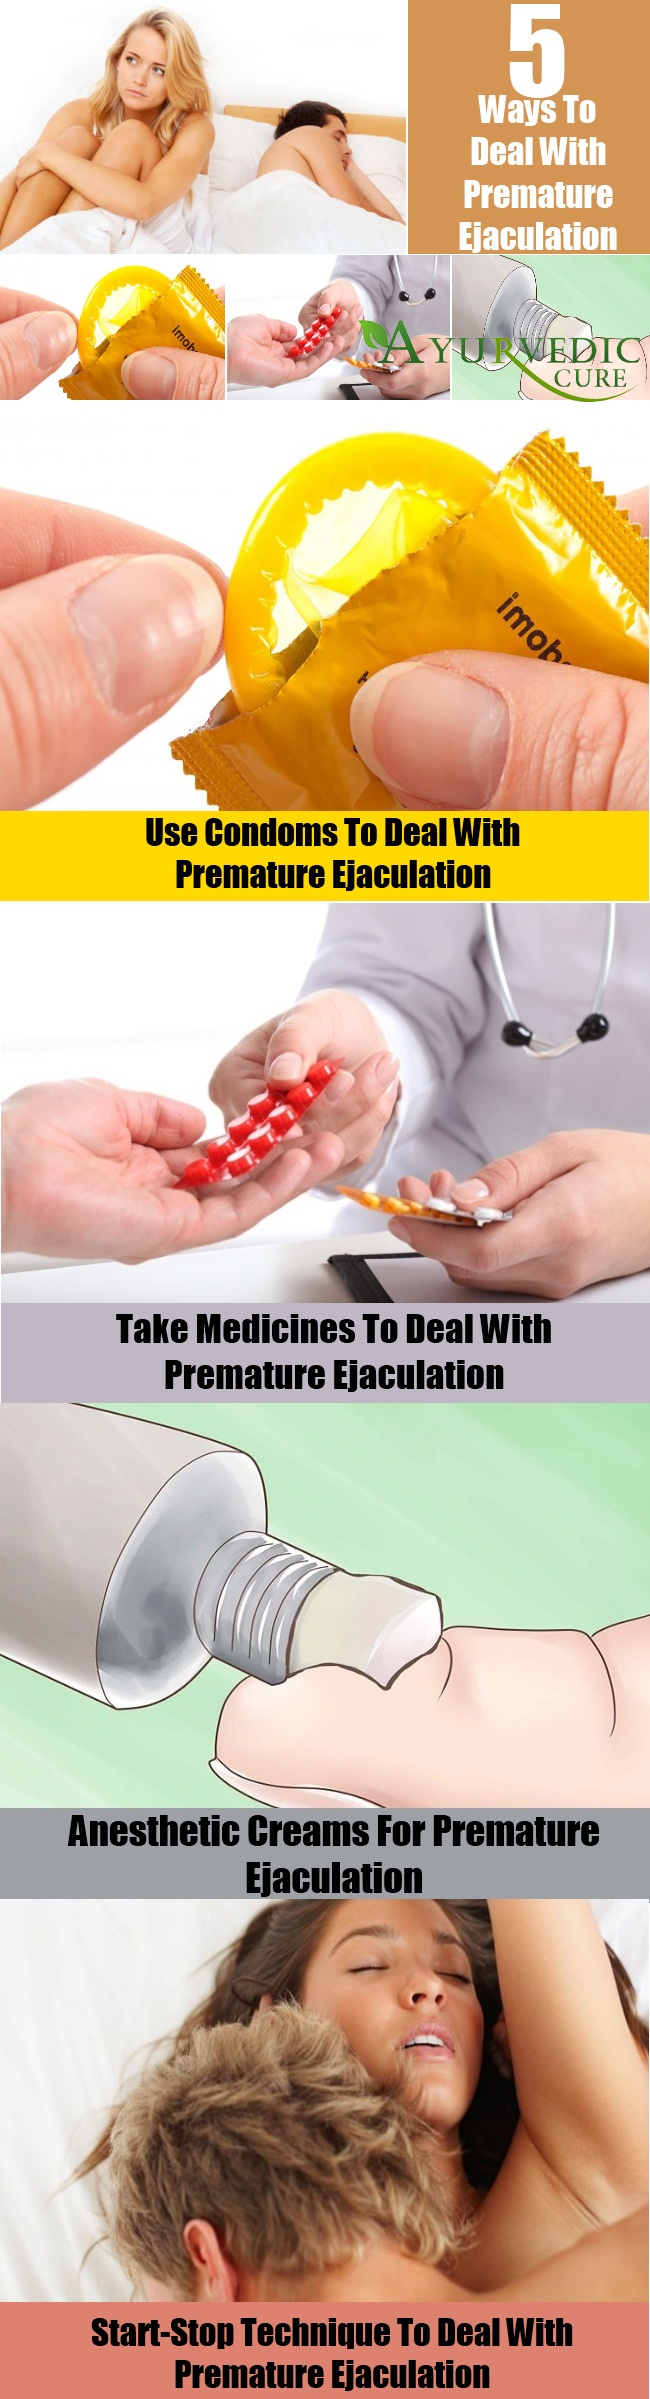 Deal With Premature Ejaculation